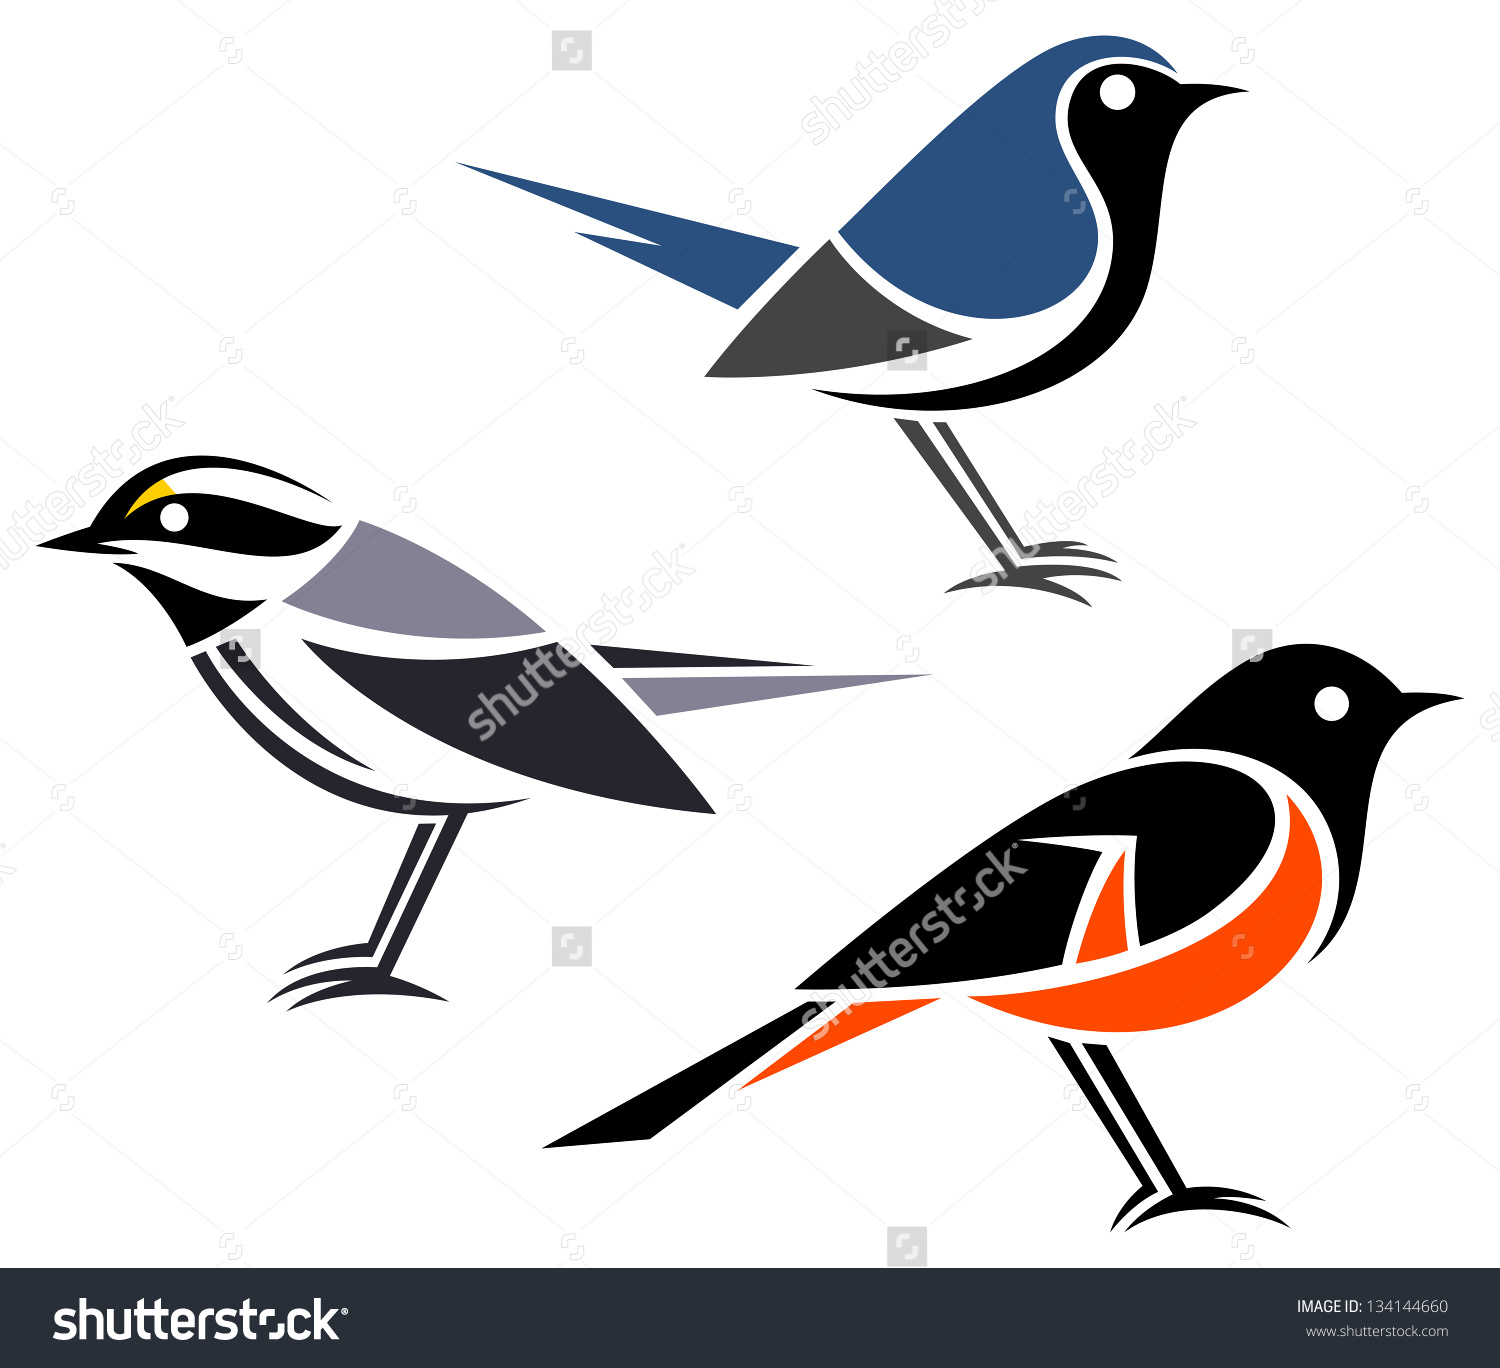 Stylized Birds Blackthroated Gray Warbler Blackthroated Stock.